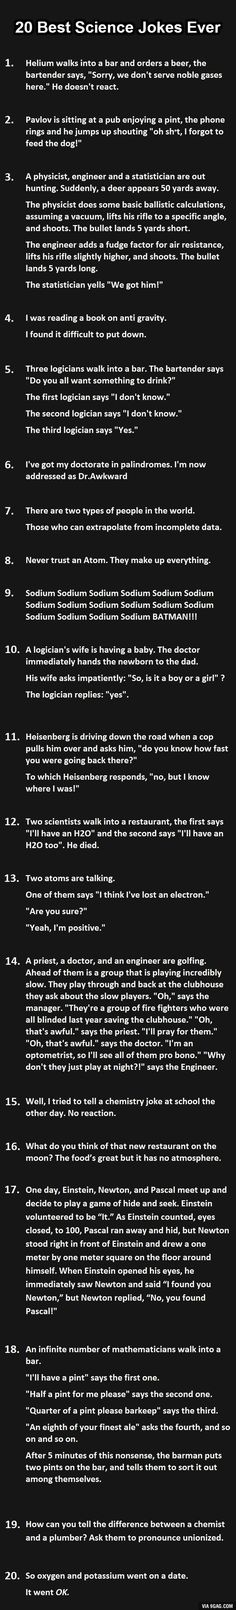 20 best science jokes ever